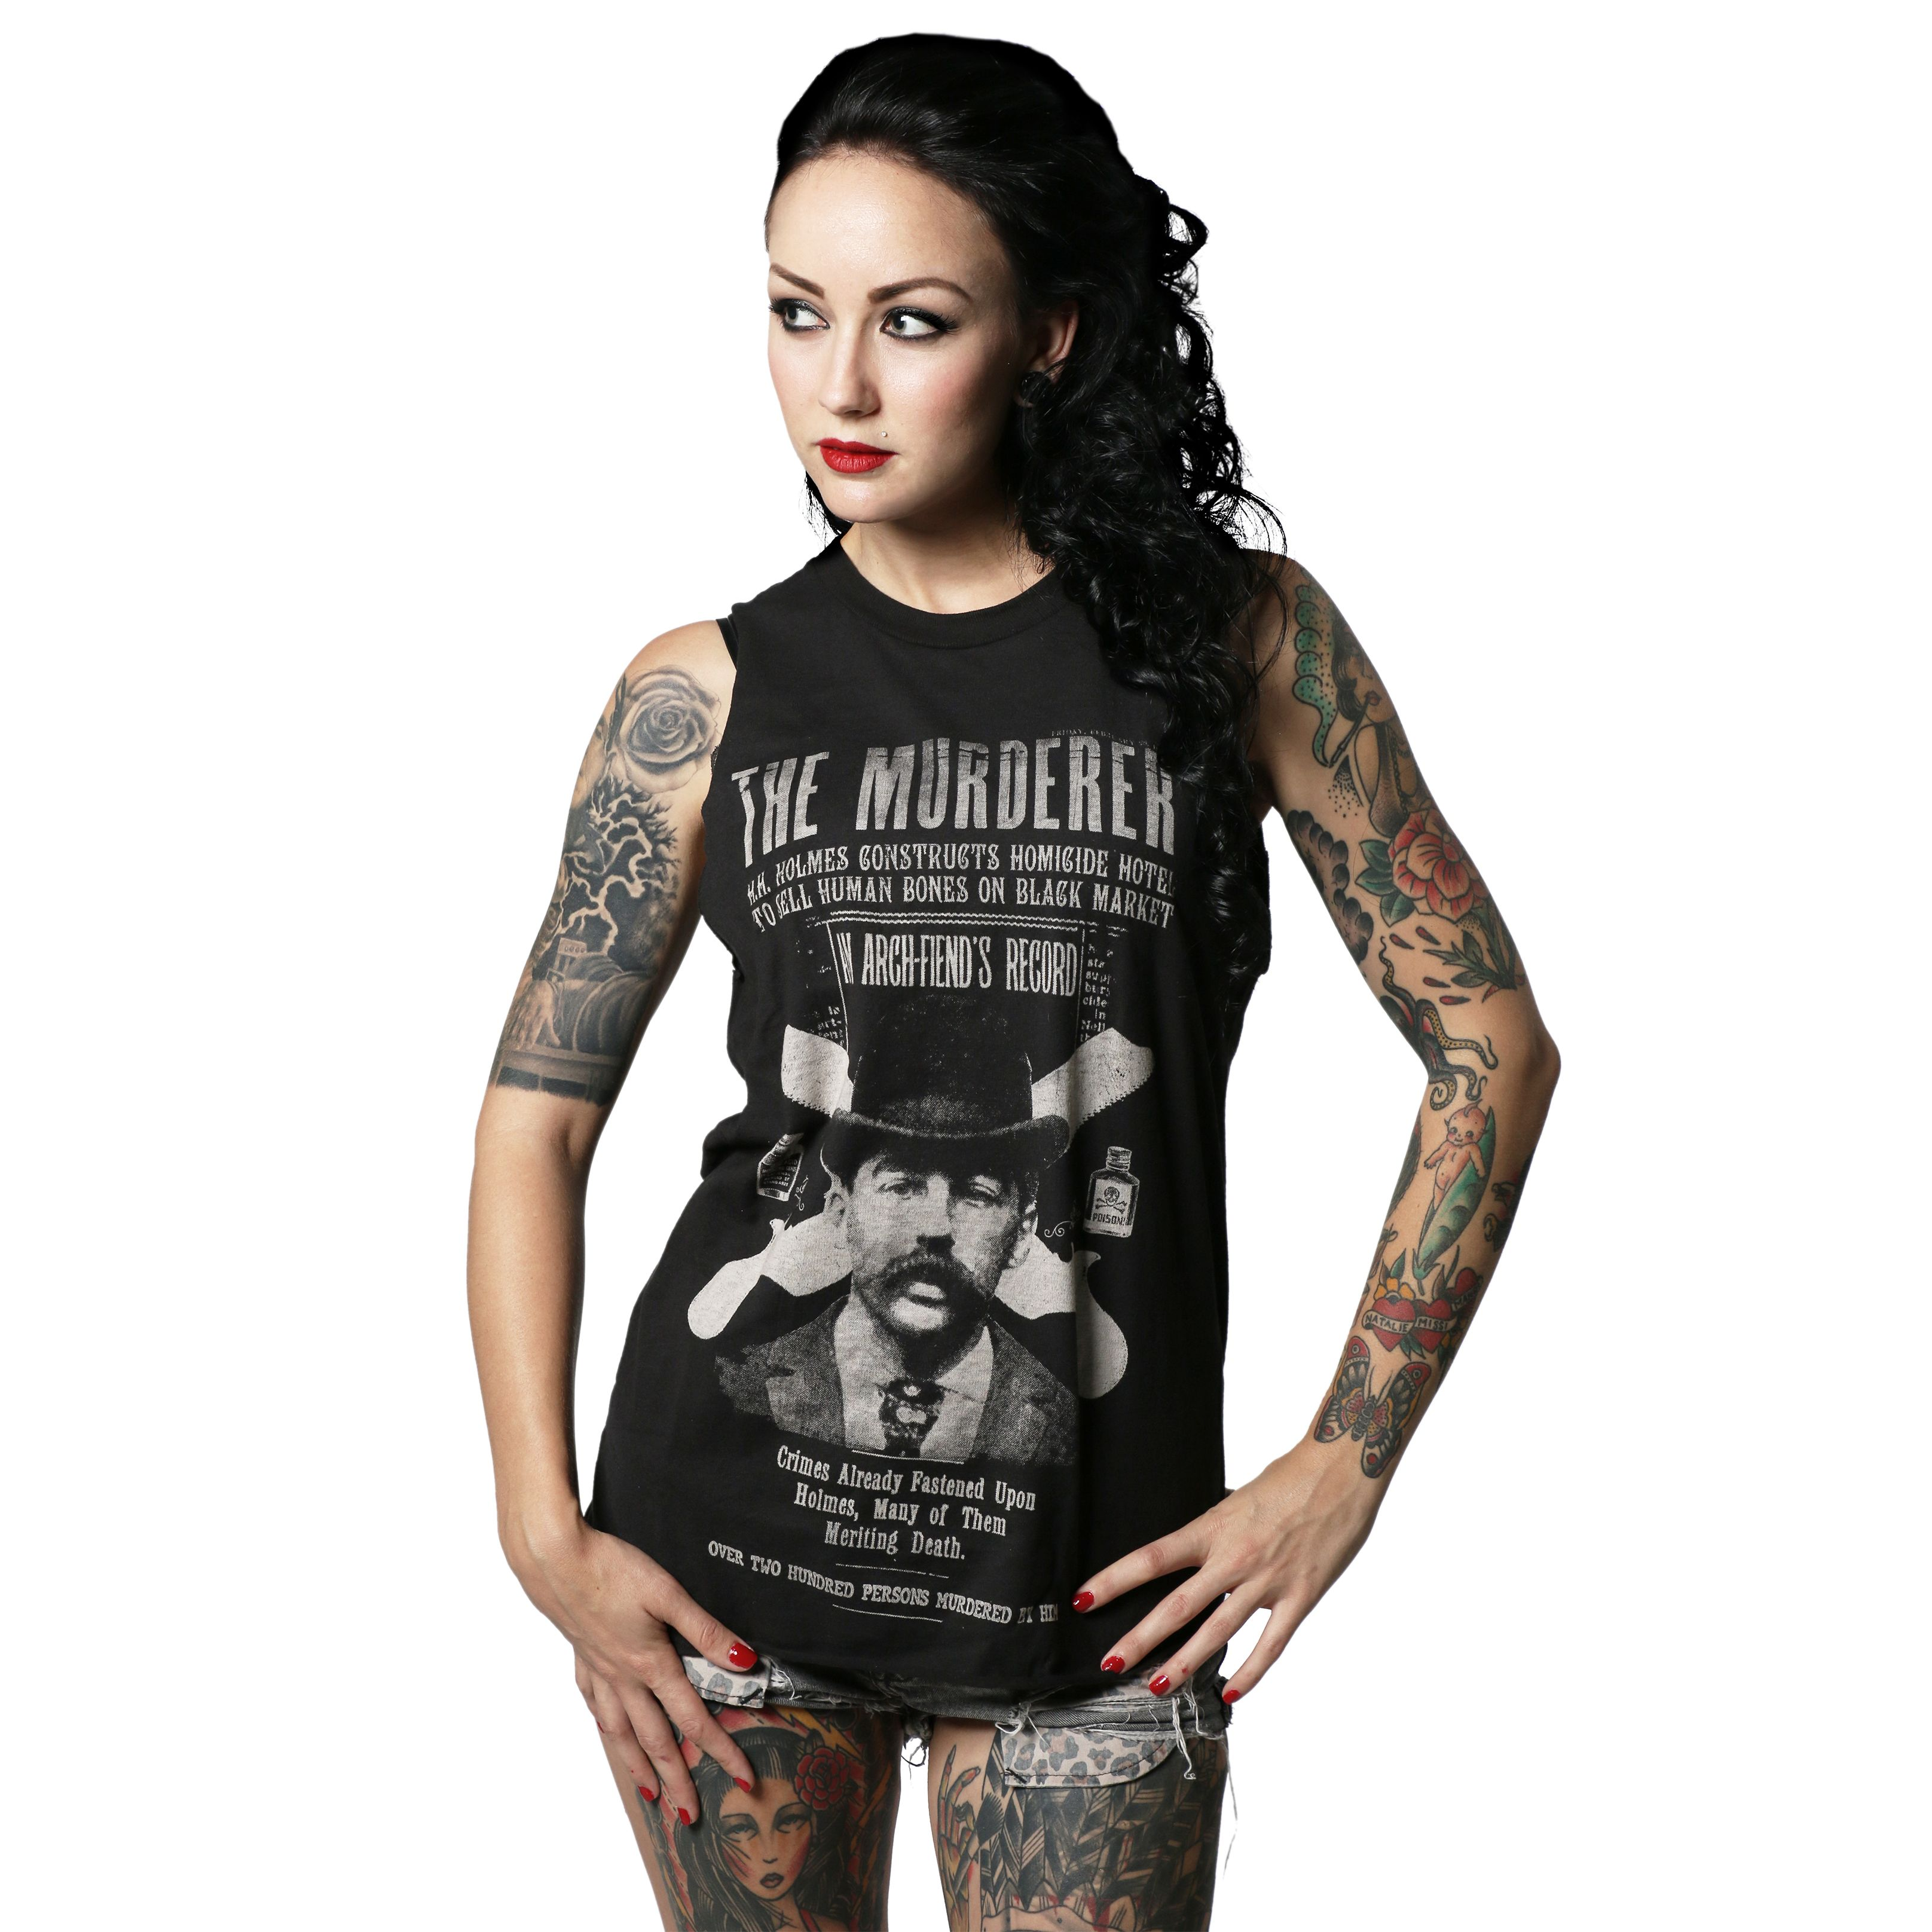 bf5db459 H.H.Holmes Murderer Muscle Tee in 2019   moda got'ico   Muscle tees ...